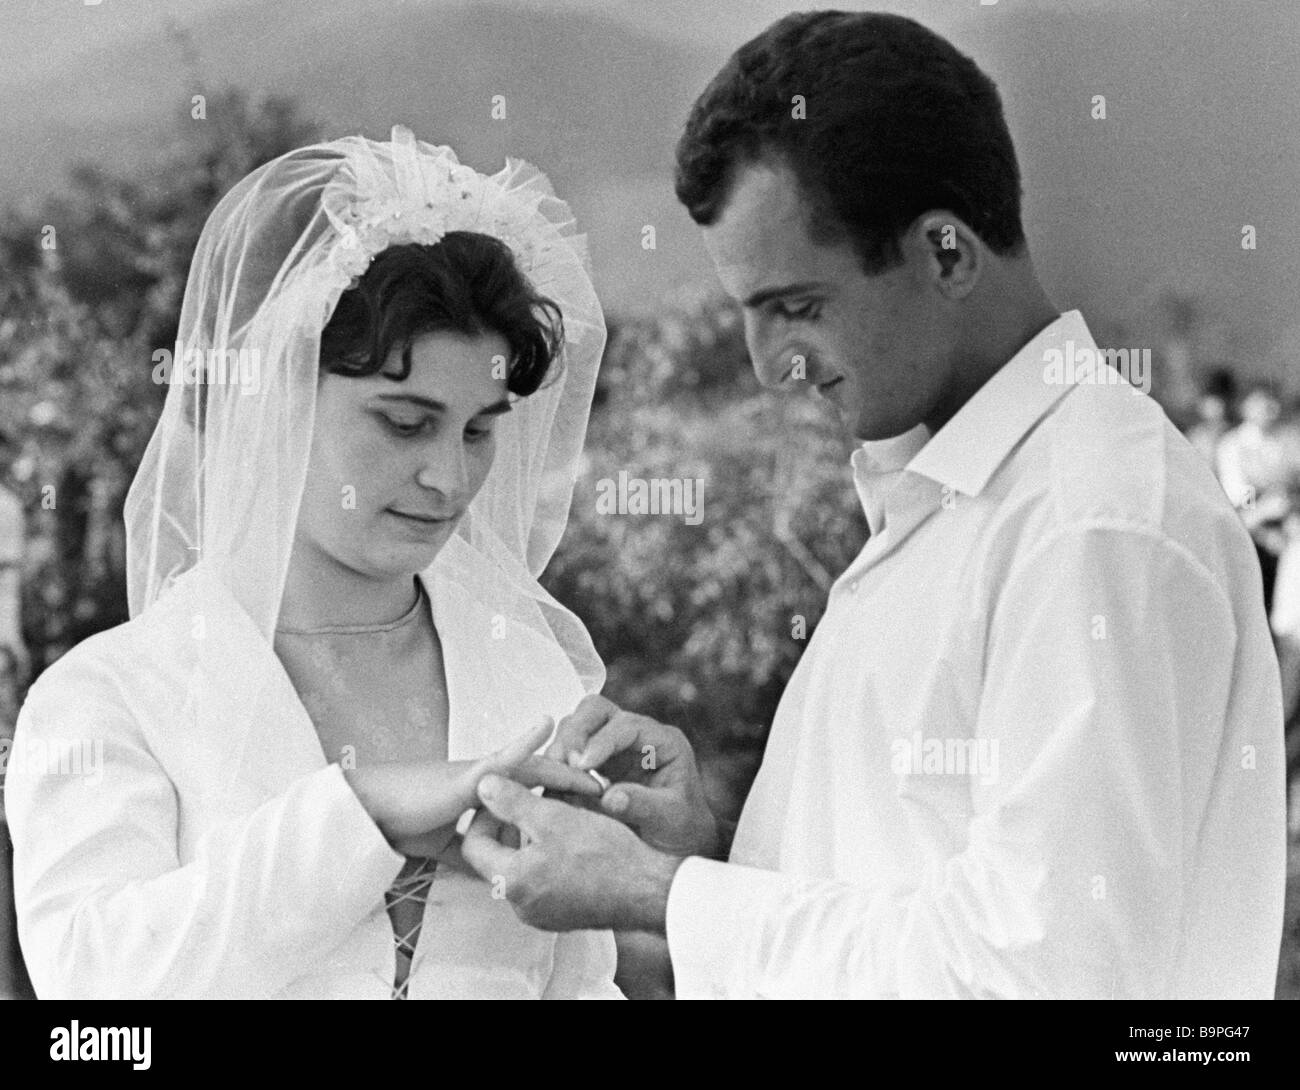 Akhalsopeli villagers exchange wedding rings - Stock Image